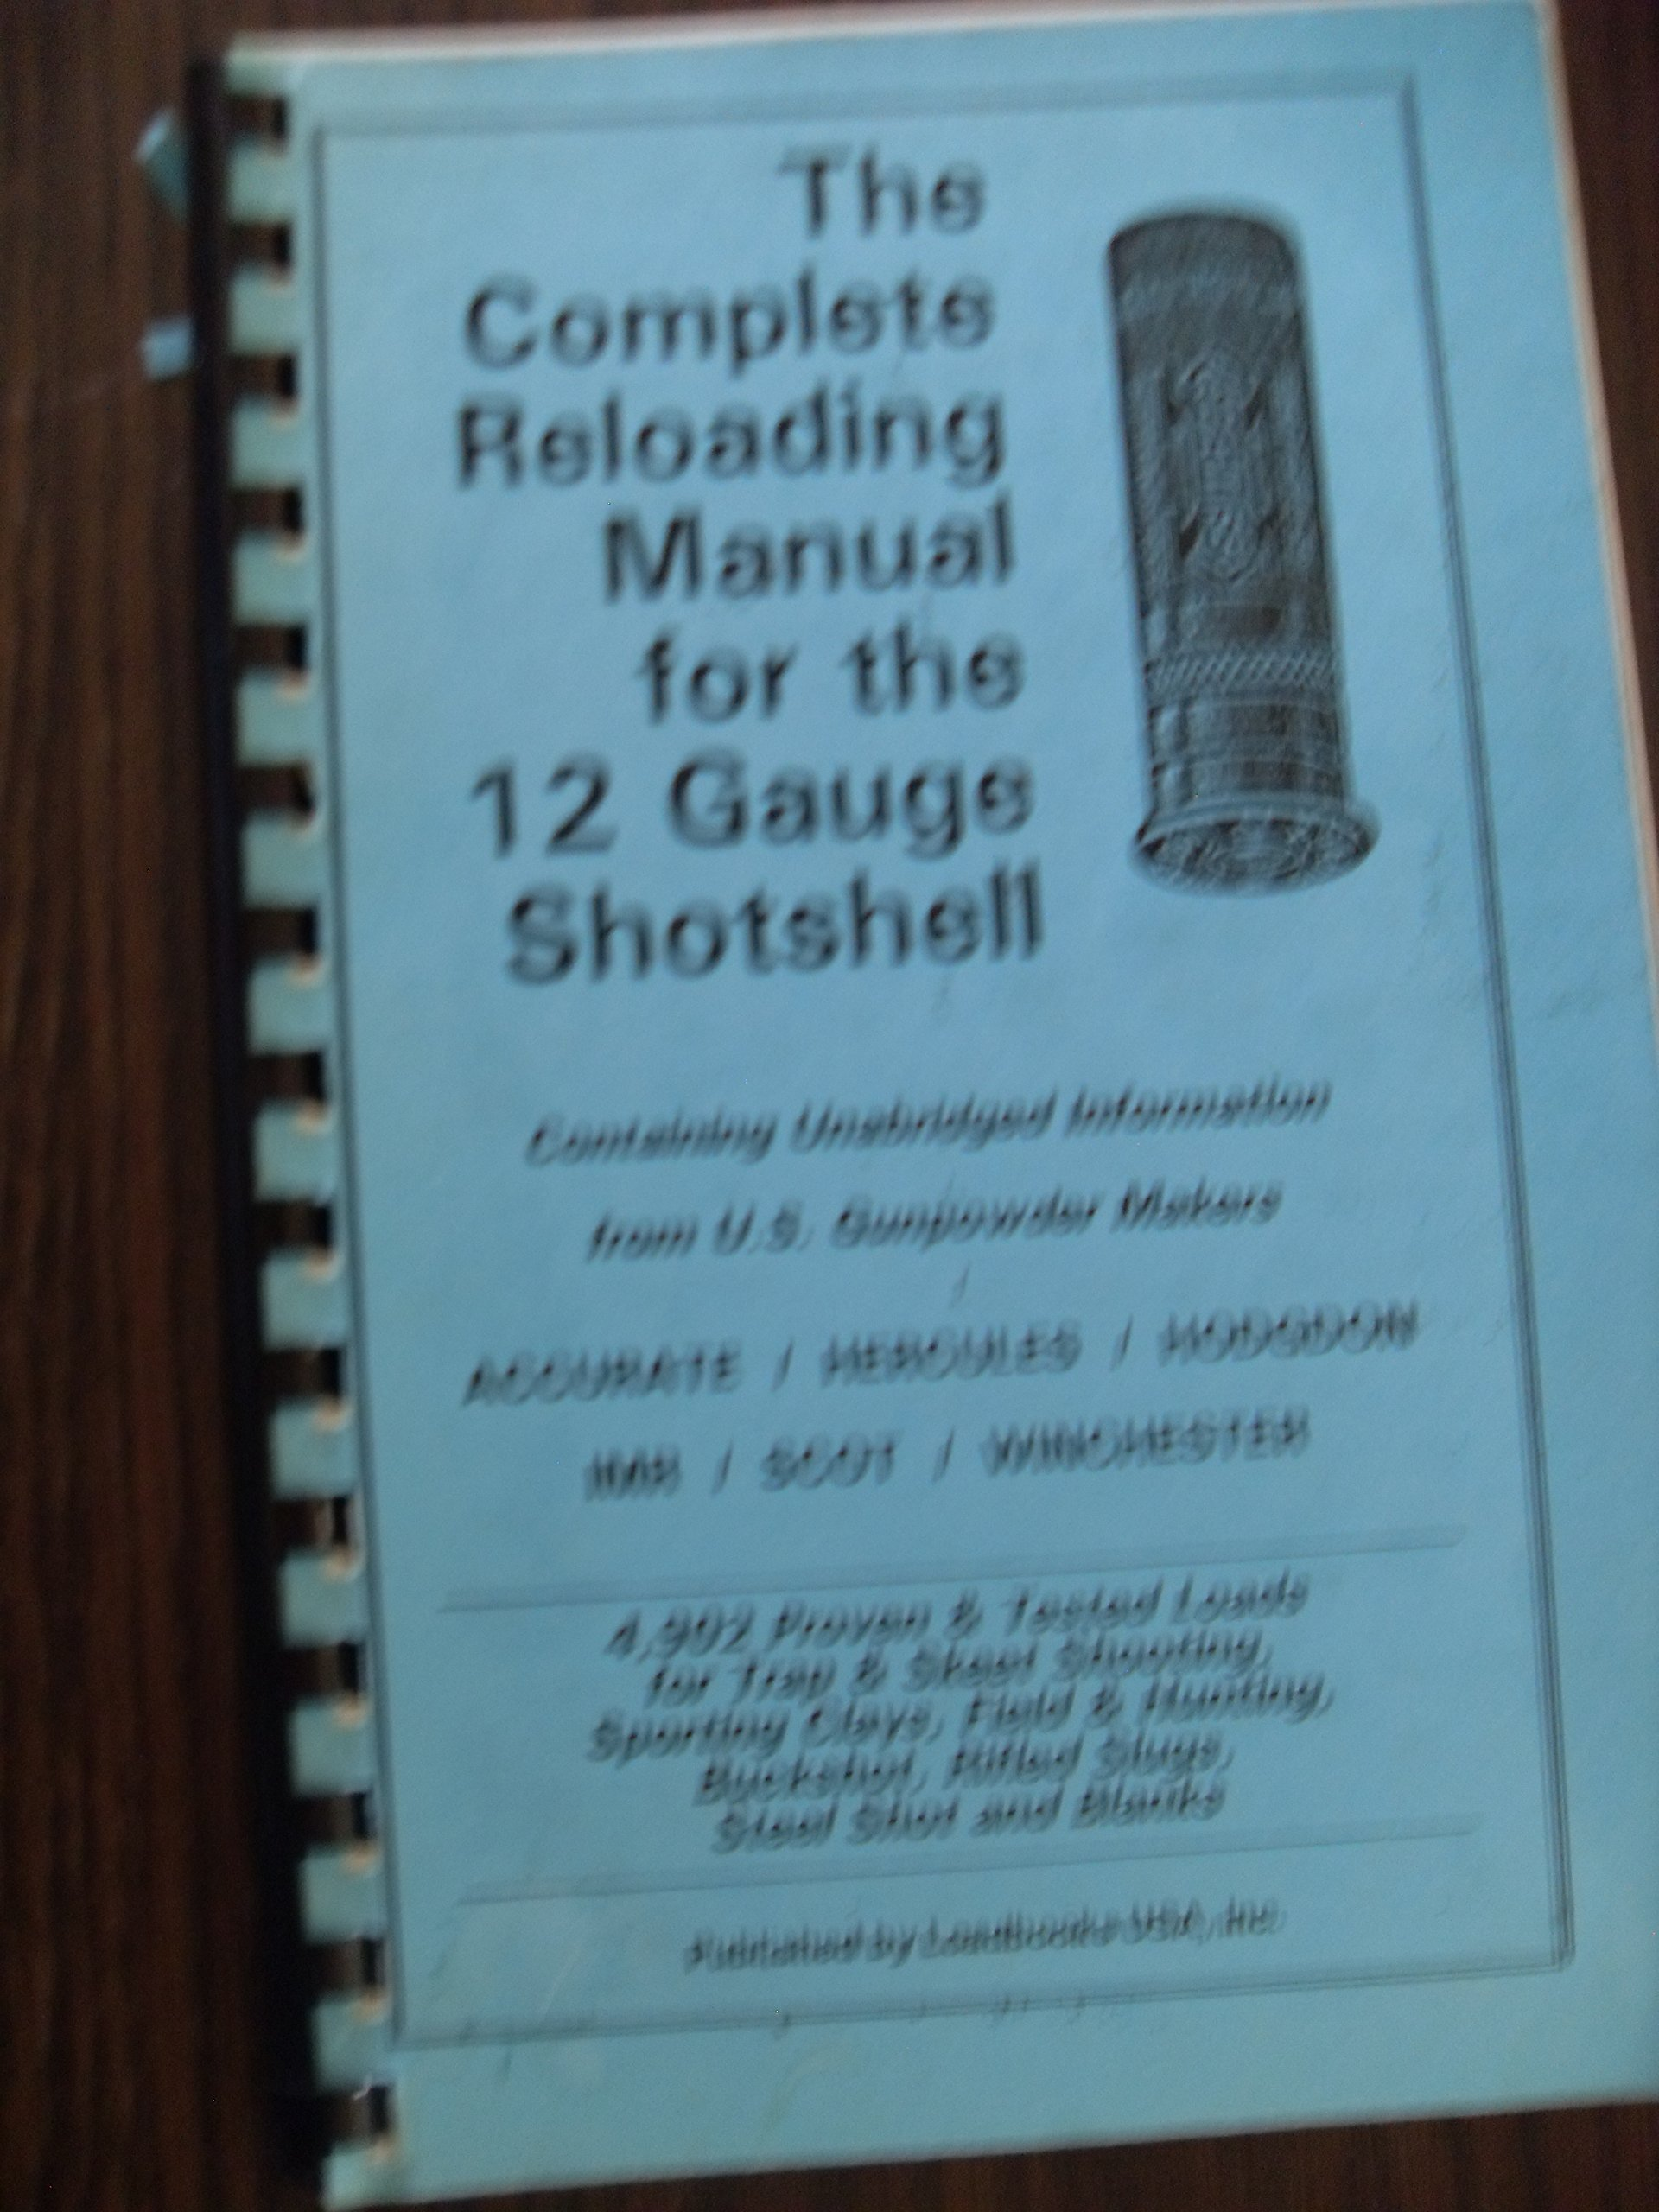 The Complete Reloading Manual for the 12 Gauge Shotshell